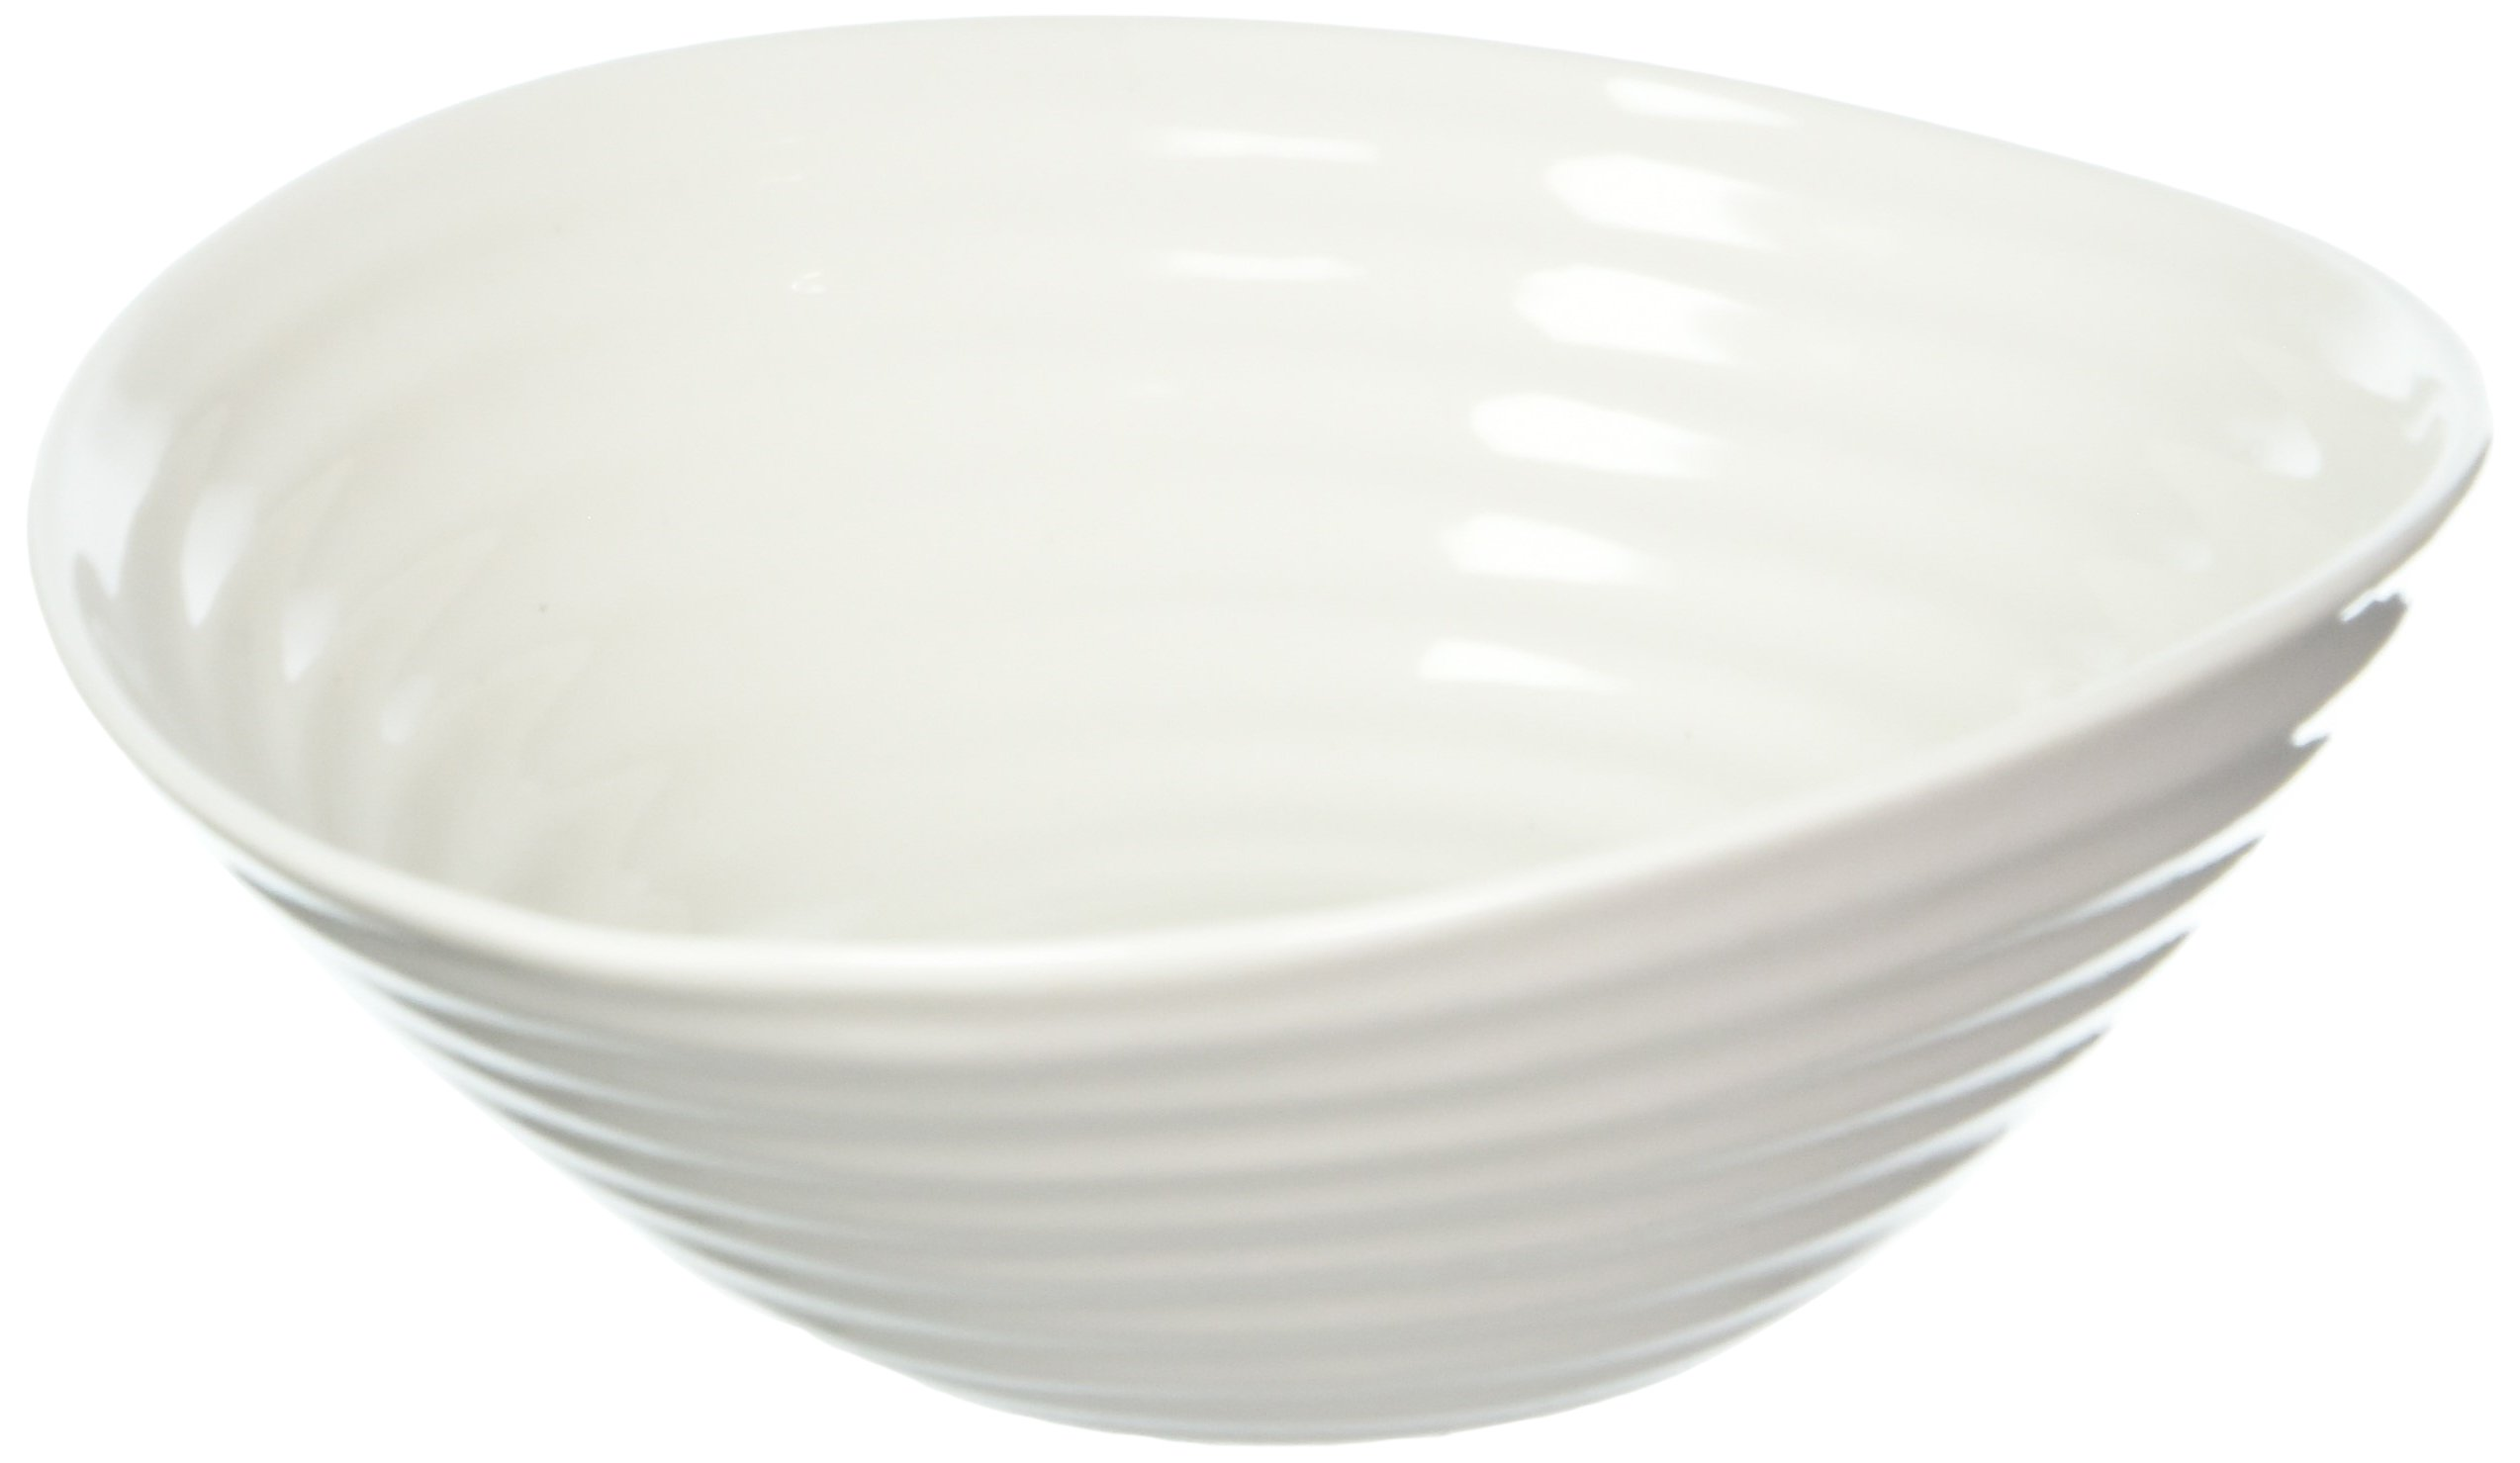 Portmeirion Sophie Conran White Dinnerware Cereal Bowl, 7.25-Inch